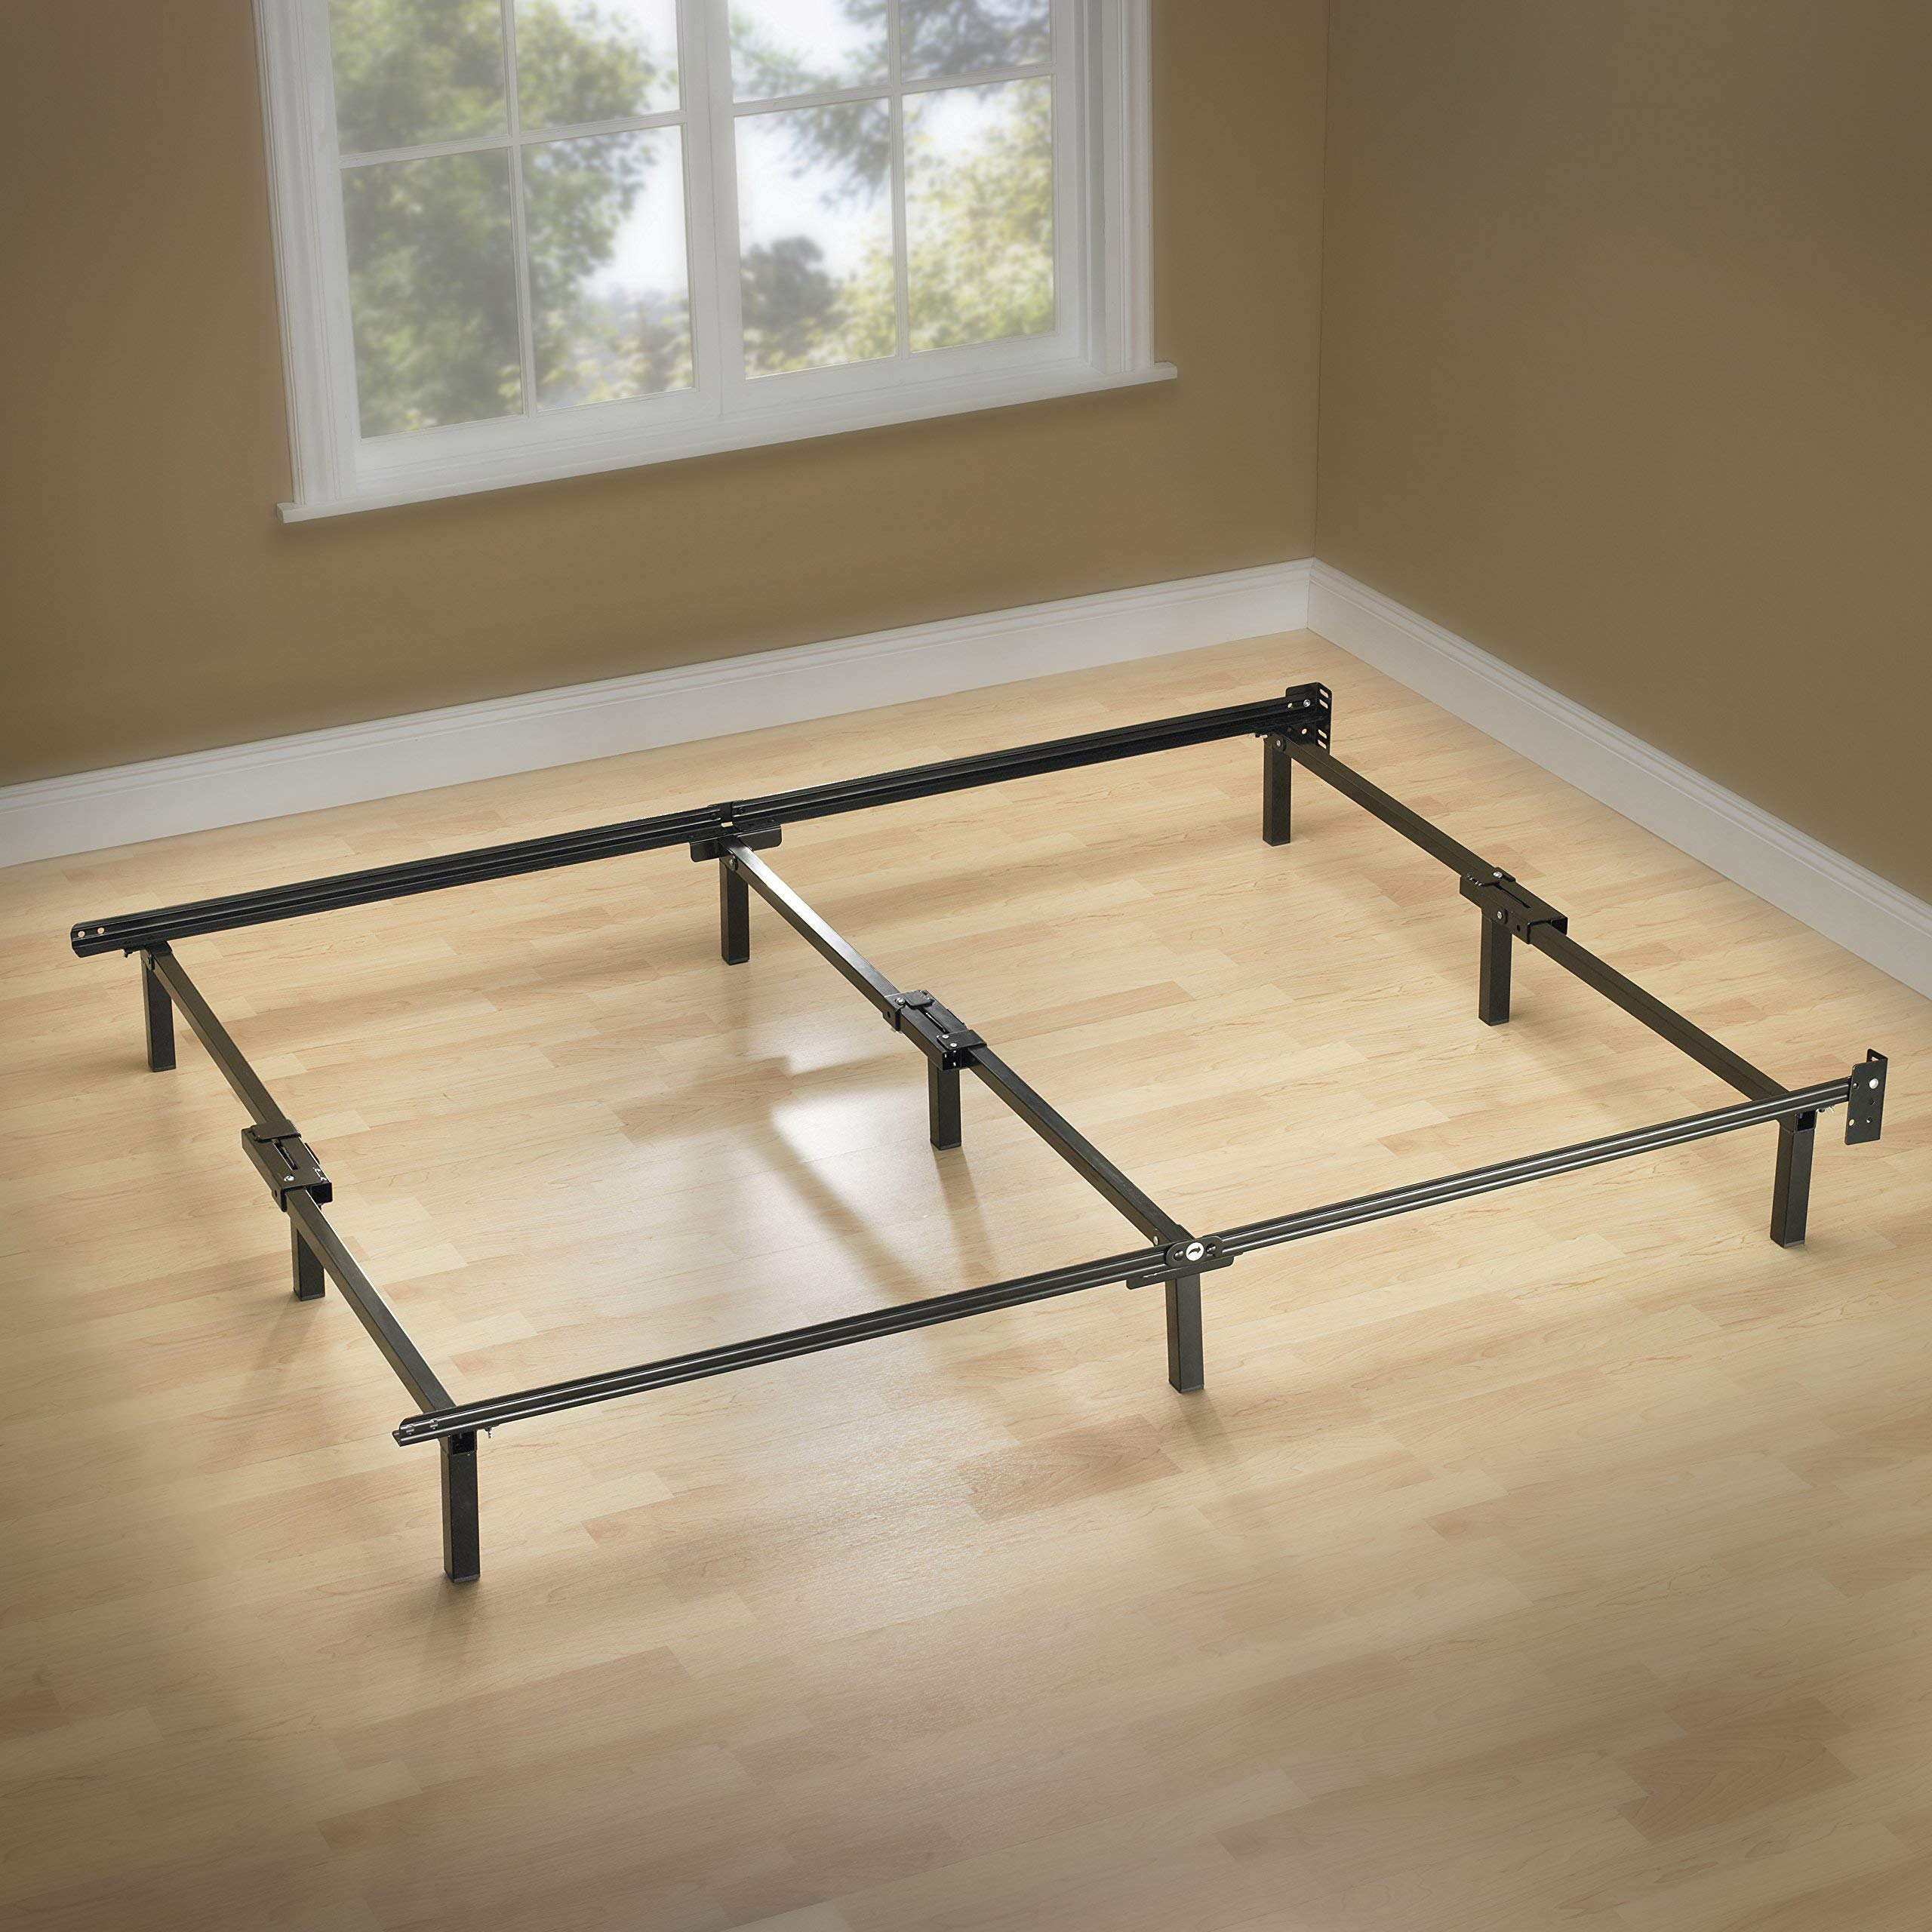 Sleep Revolution Compack Bed Frame with 9-Leg Support System - King (Renewed)